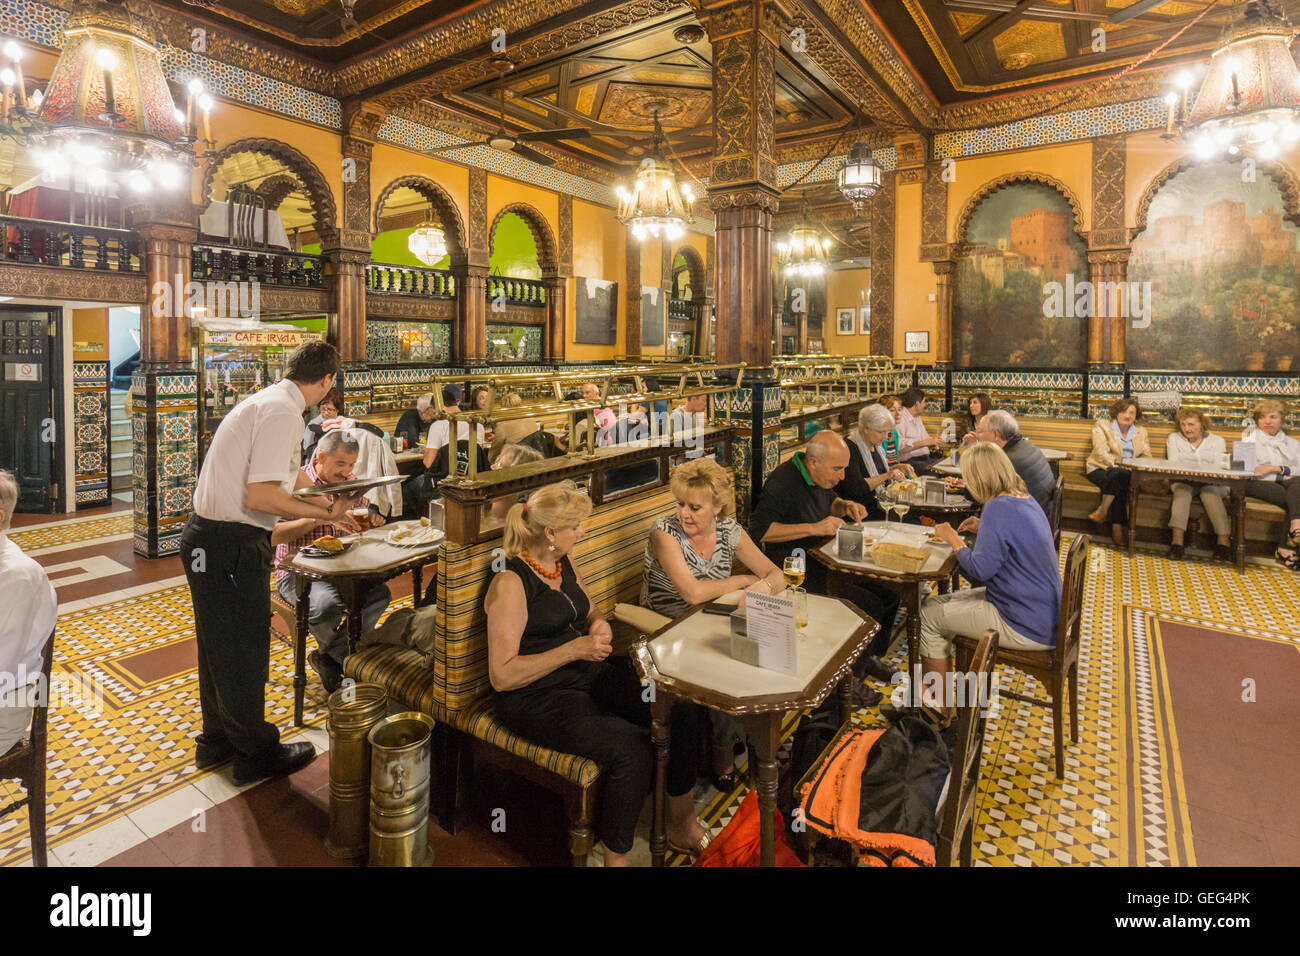 Interior of the historical Cafe Iruna established in 1903, Bilbao, Basque Country, Spain - Stock Image